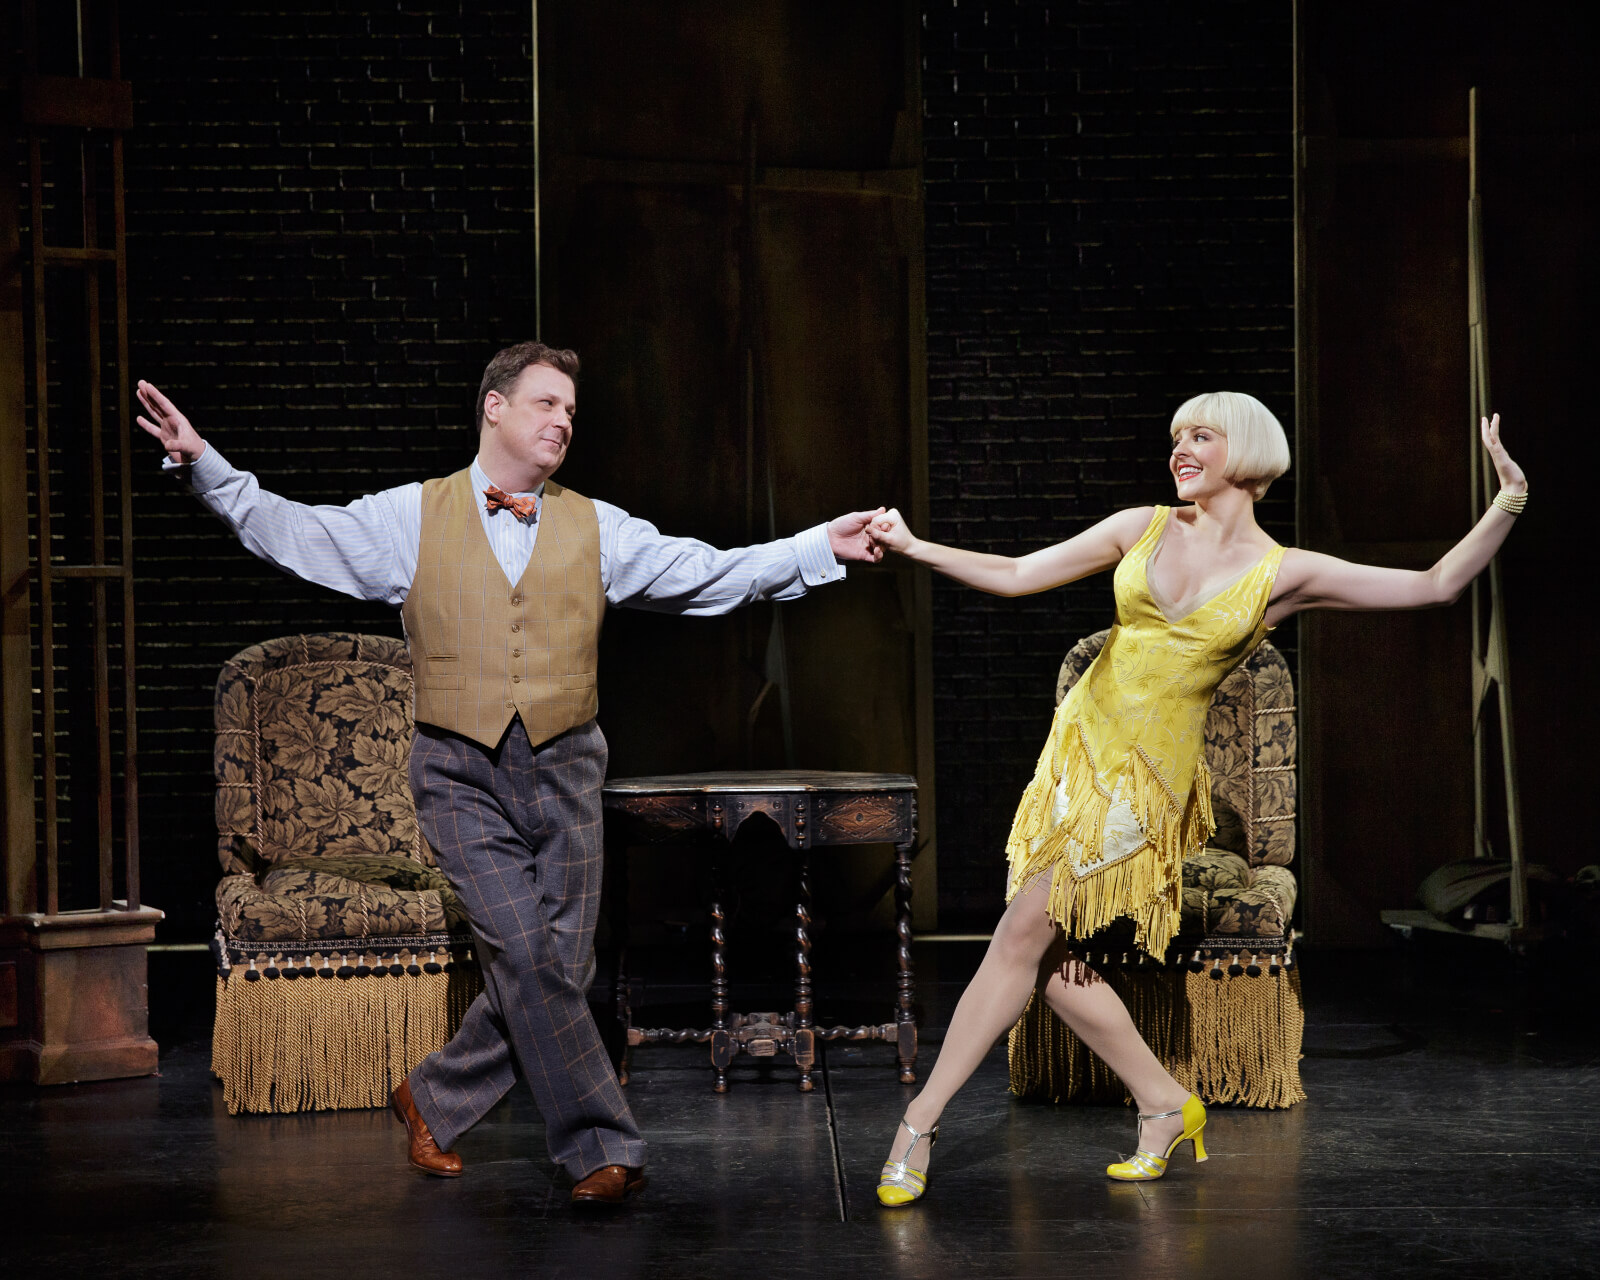 Warner Purcell (Brooks Ashmanskas in a bow tie and vest) dancing with Olive Neal (Heléne Yorke in a yellow dress).